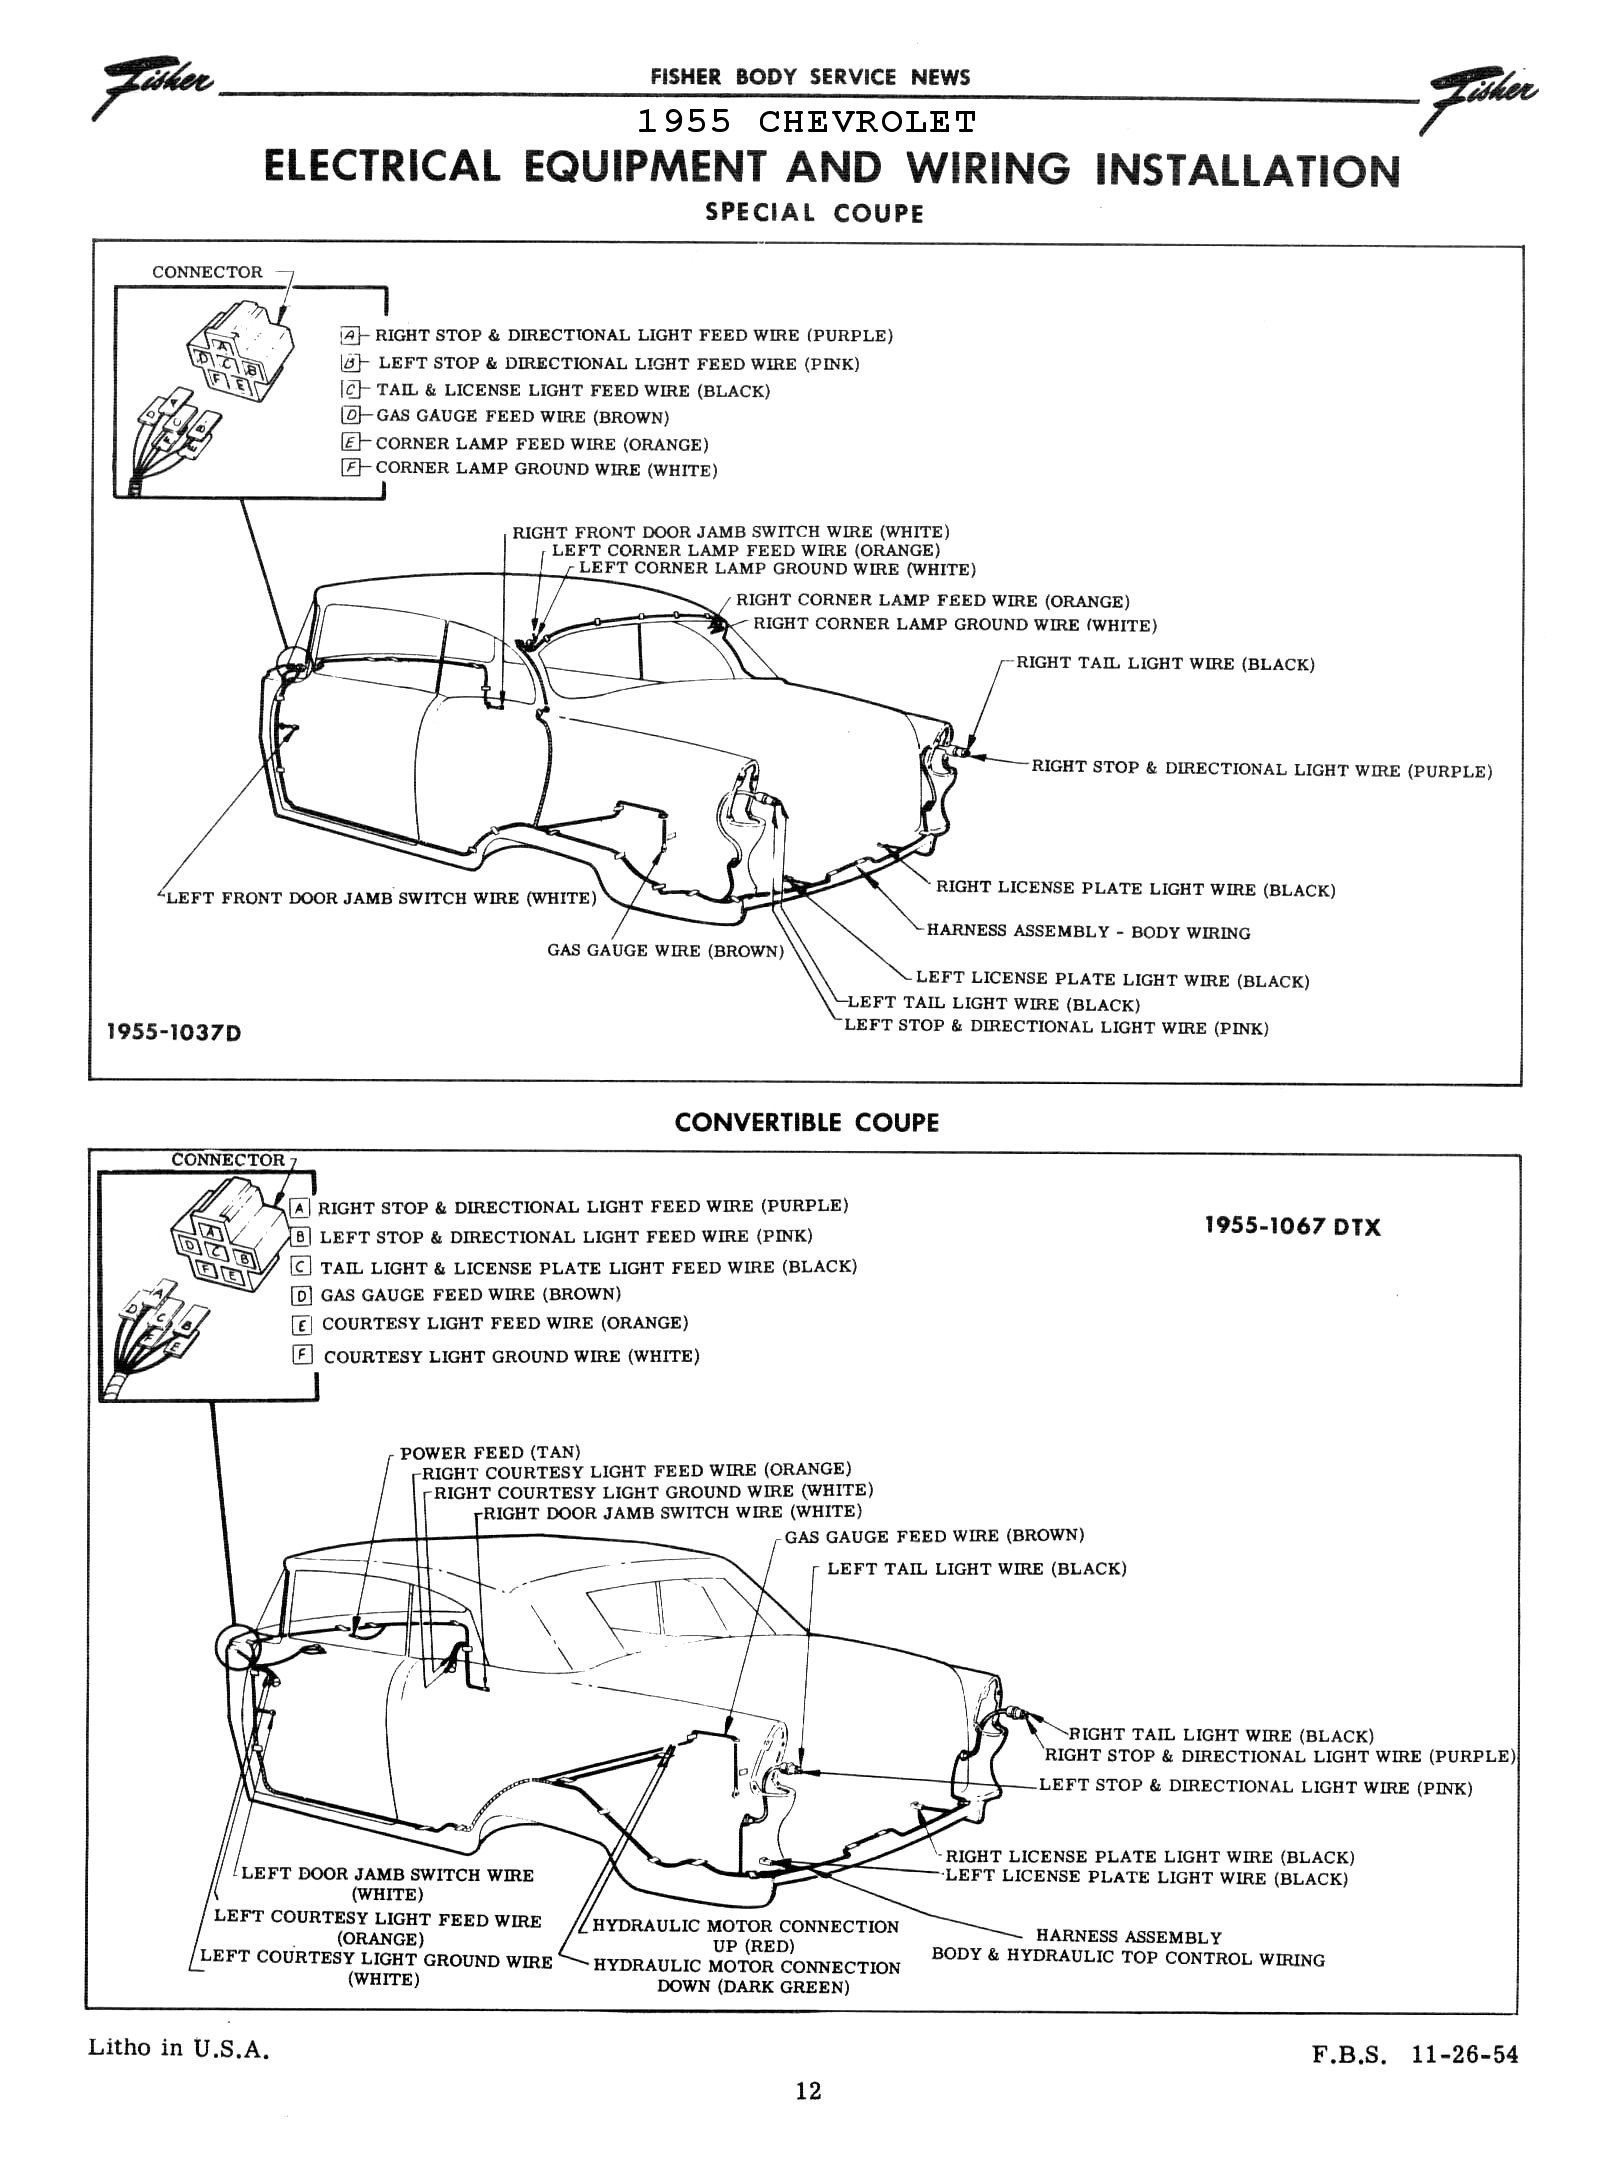 55fsn140612 chevy wiring diagrams 1955 chevy wiring diagram at gsmportal.co